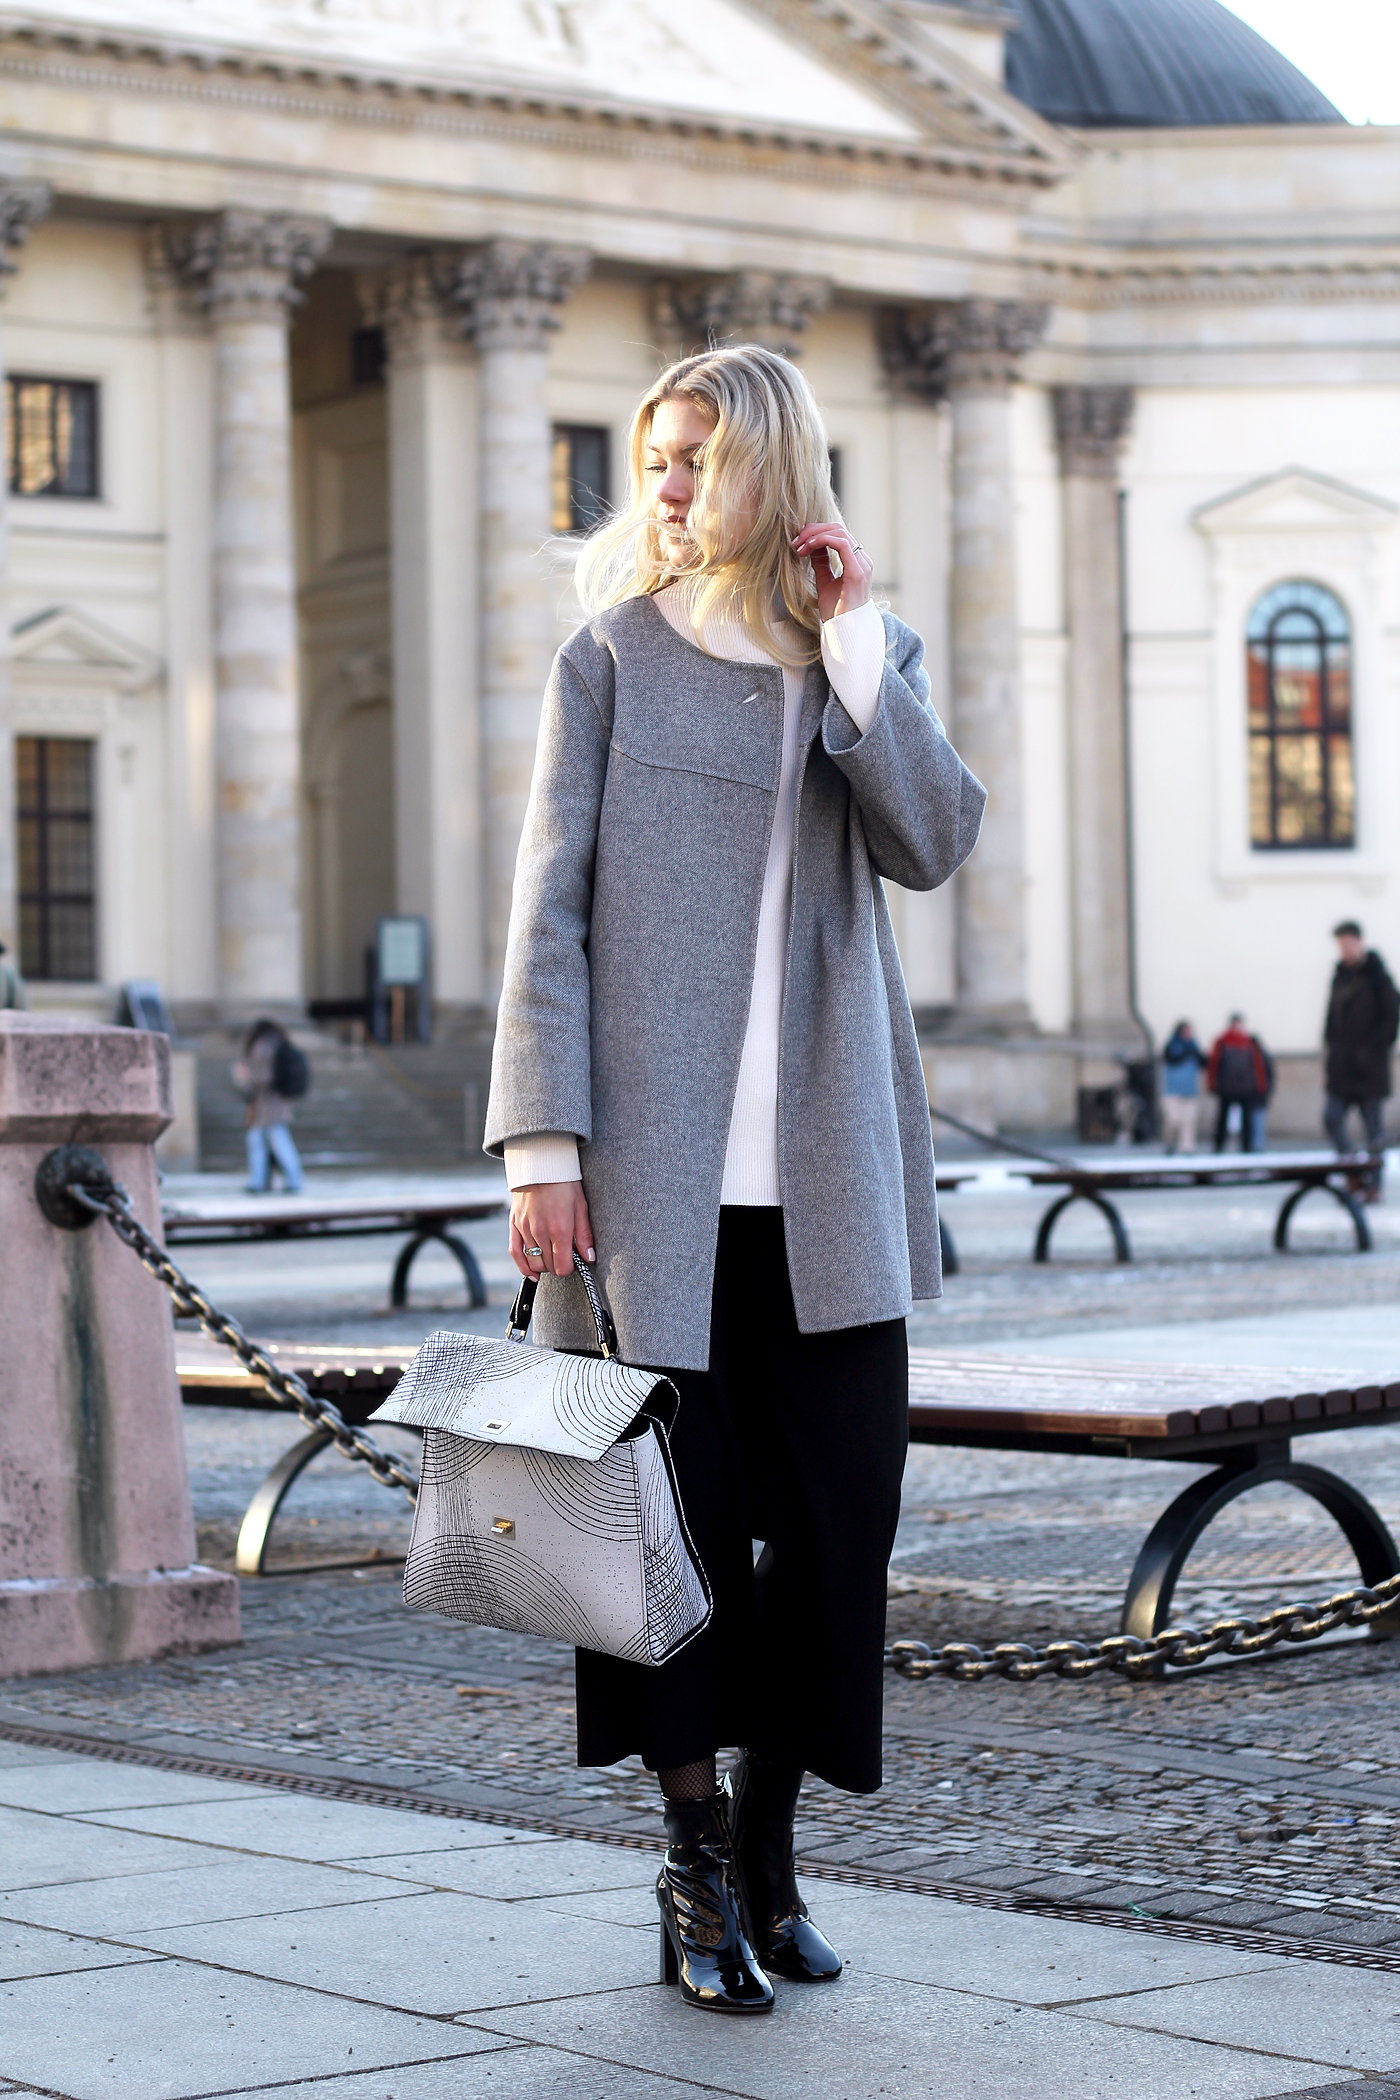 somehappyshoes_fashionblog_Berlin_fashion_week_look_Zara_hugo_boss7